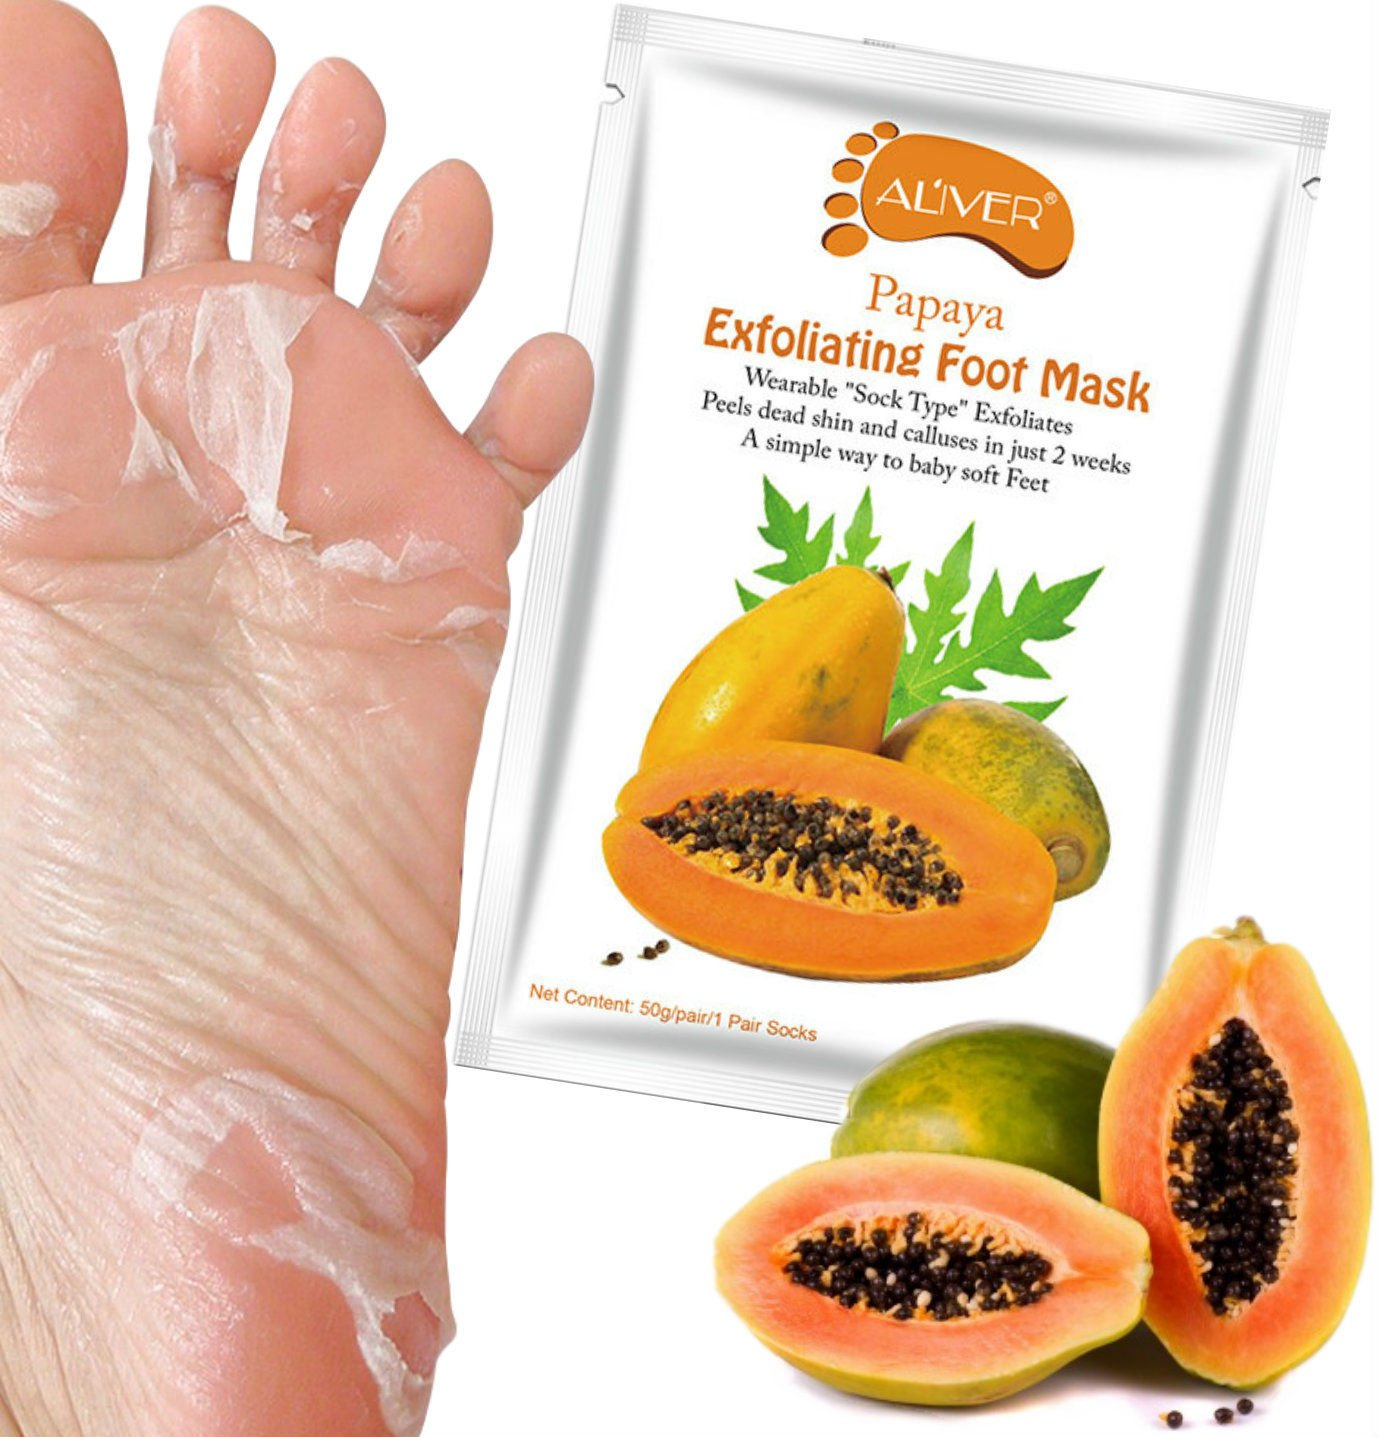 Aliver® Exfoliating Peeling with Papaya Extract Feet Foot Mask Socks Foot Care Renew Foot Dead Cracked Skin Corn Remover, Perfectly Peel Away Calluses and Dead Skin Cells in Just 7 days, Also Treats unpleasant odour - Socks Fits Up To Size 11UK / 46EU Aliv